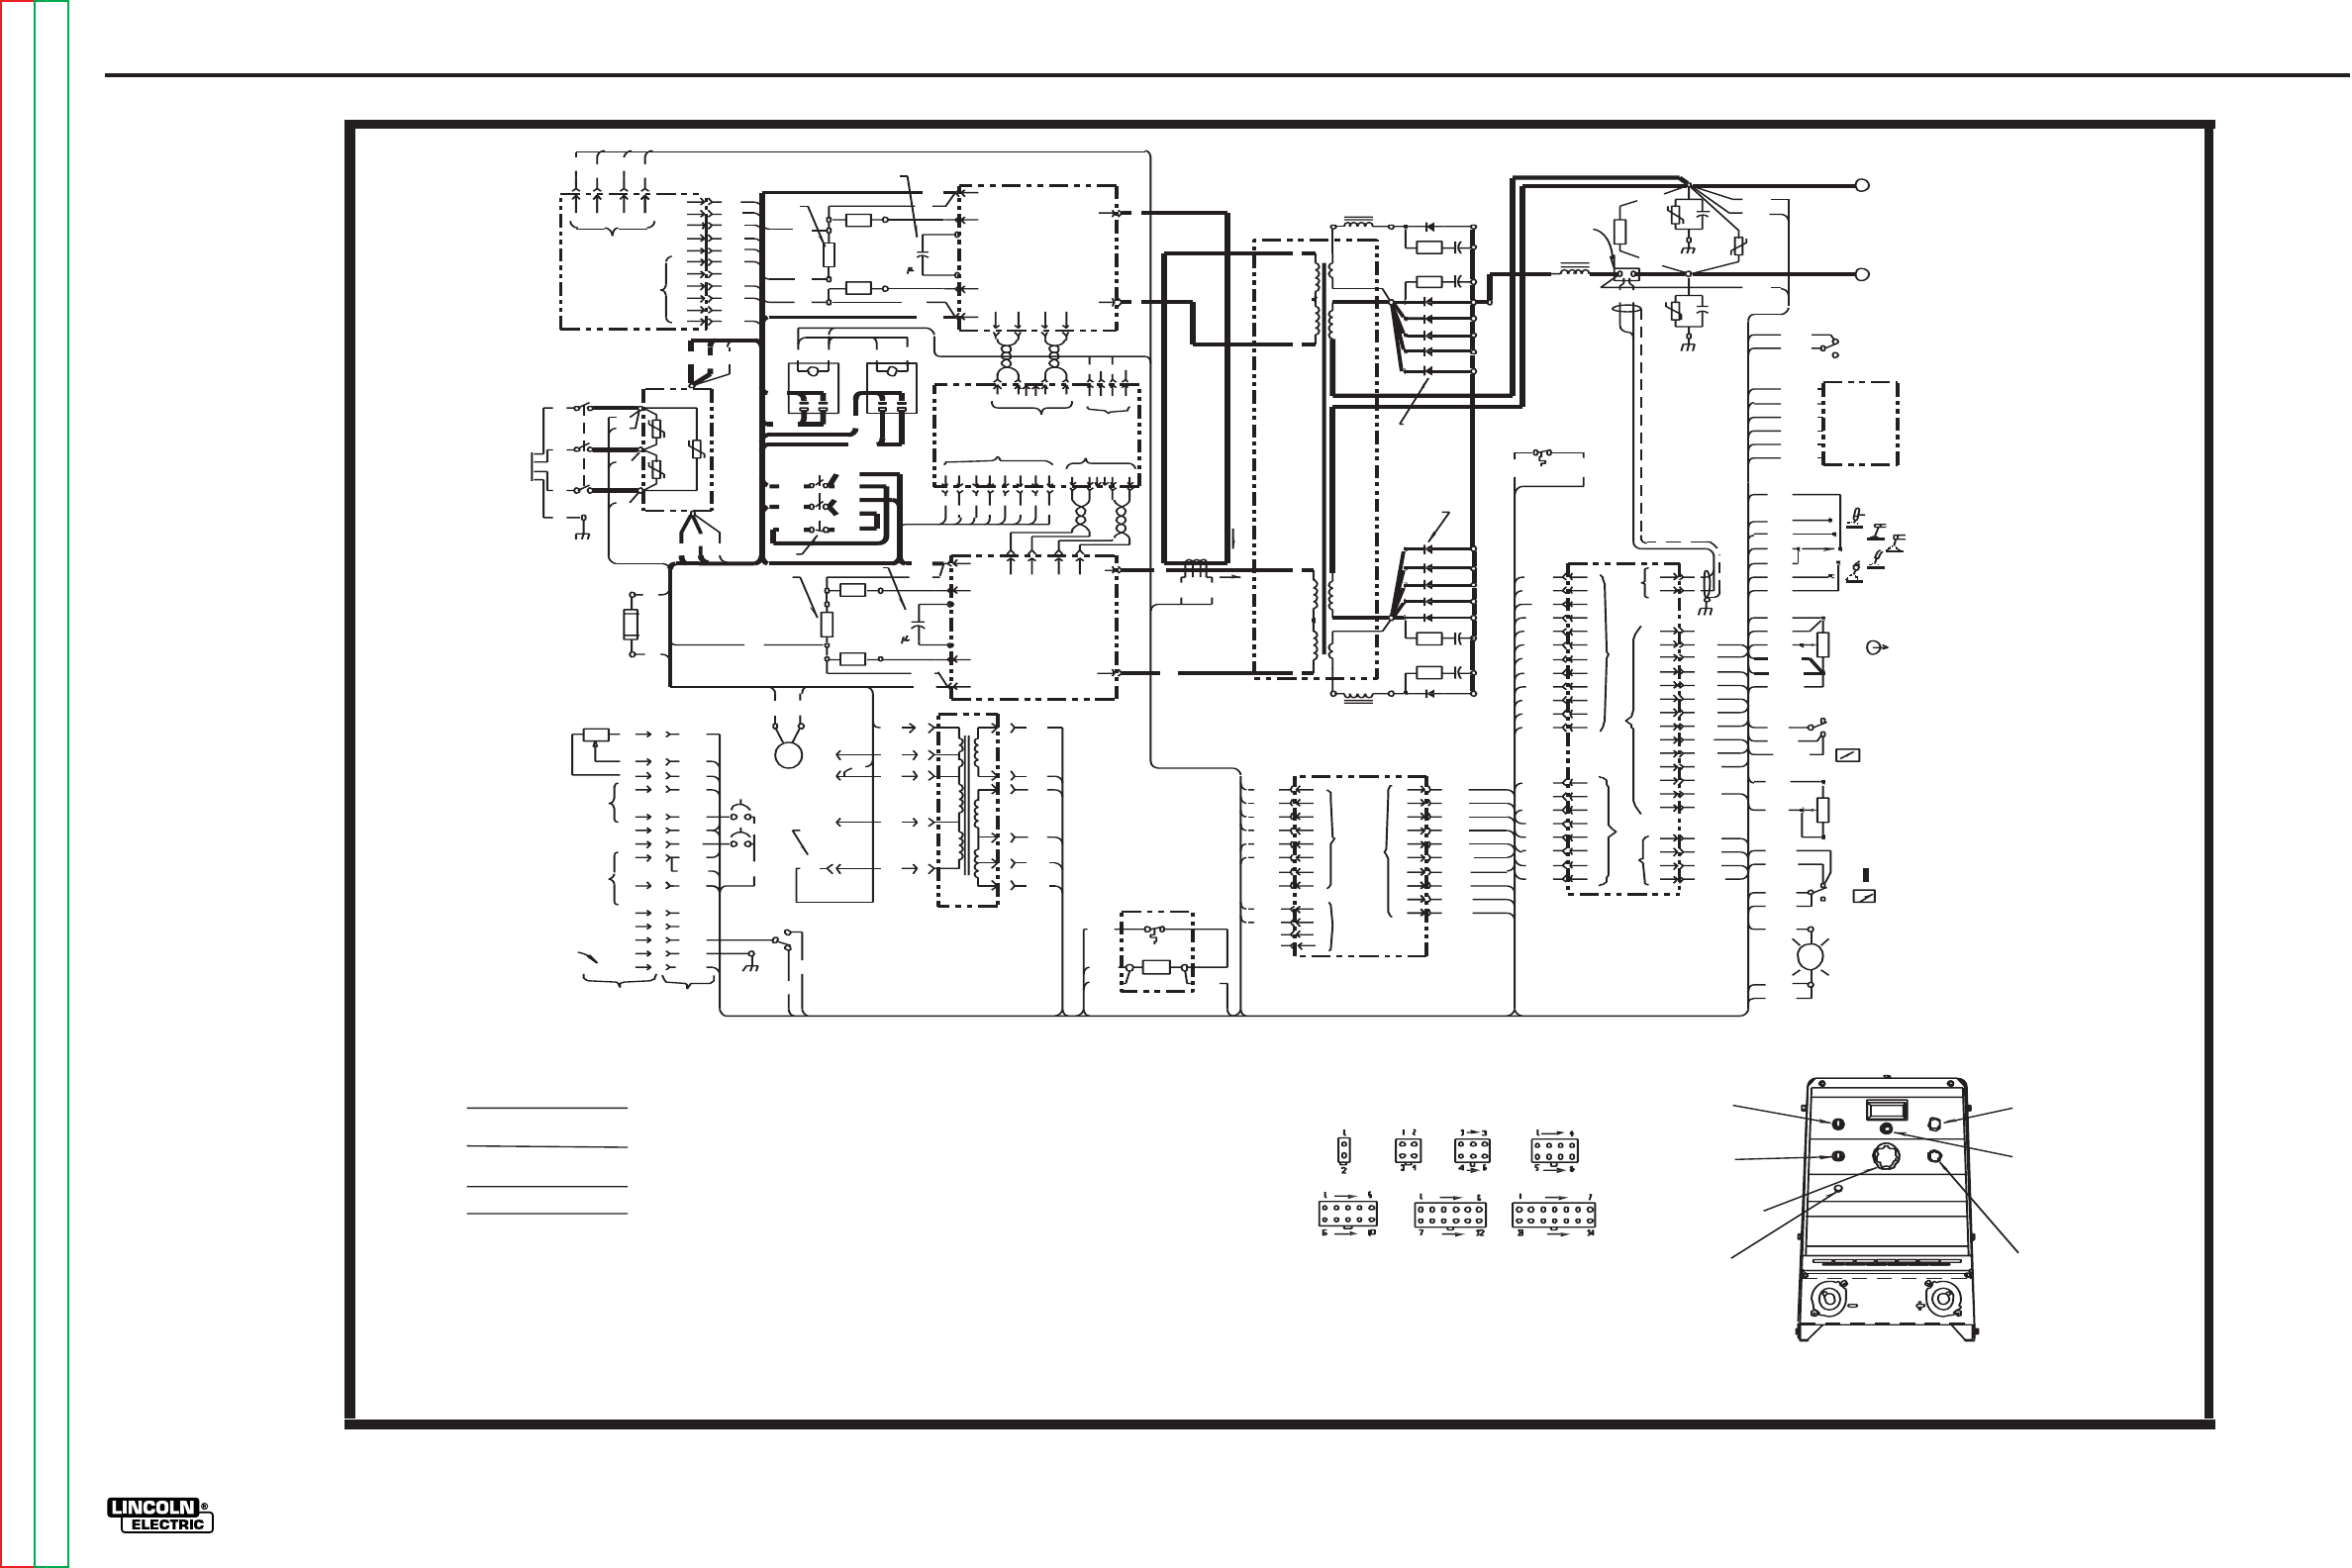 Lincoln Electric Invertec V300 Pro Svm105 B Users Manual Svm105b Pnp 24v Wiring Diagrams For Eyes Photo Electrical G 4